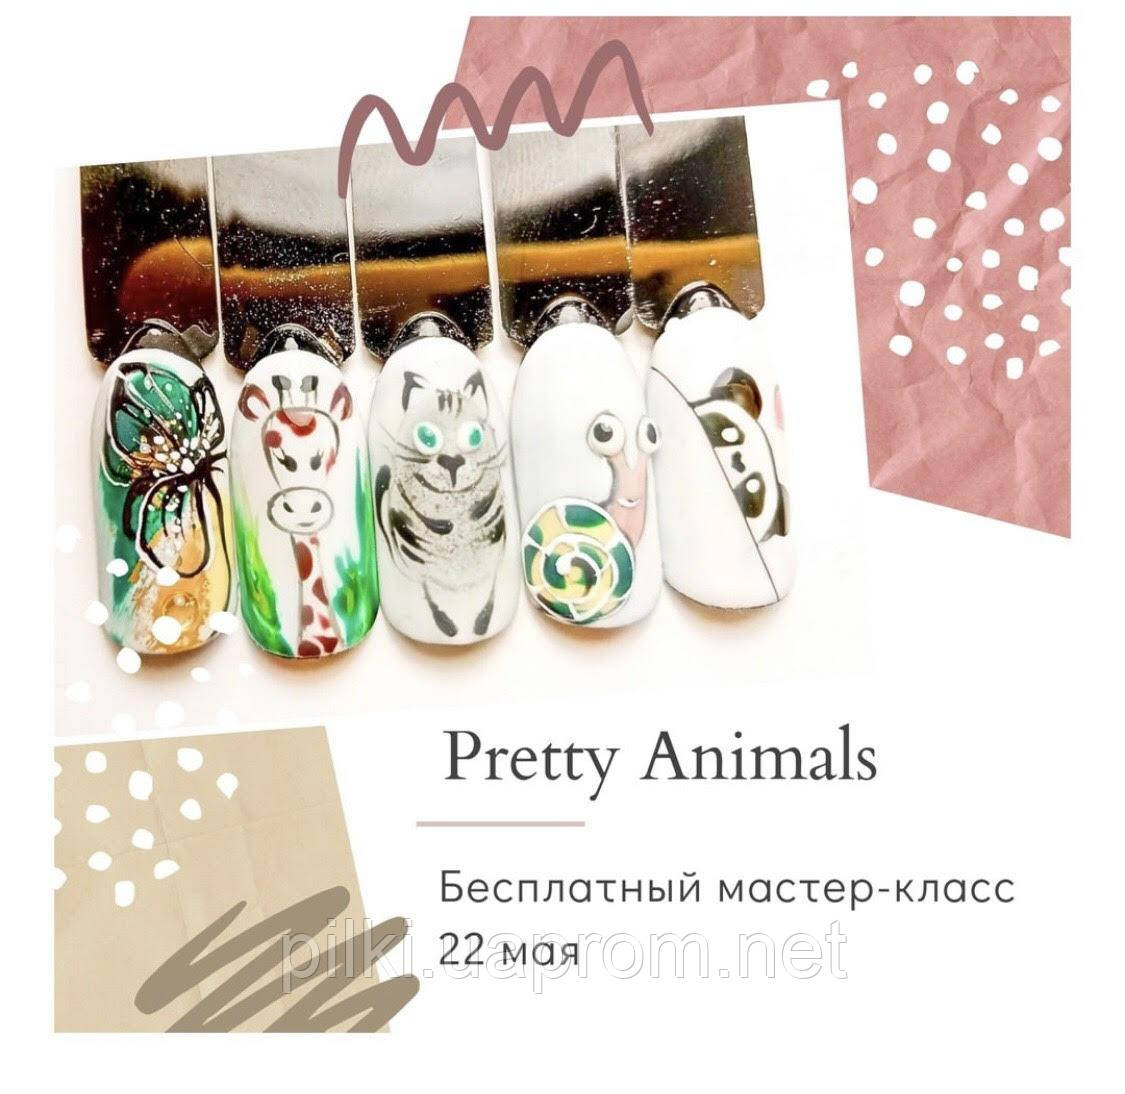 Бесплатный семинар по дизайнам Pretty Animals 22.05